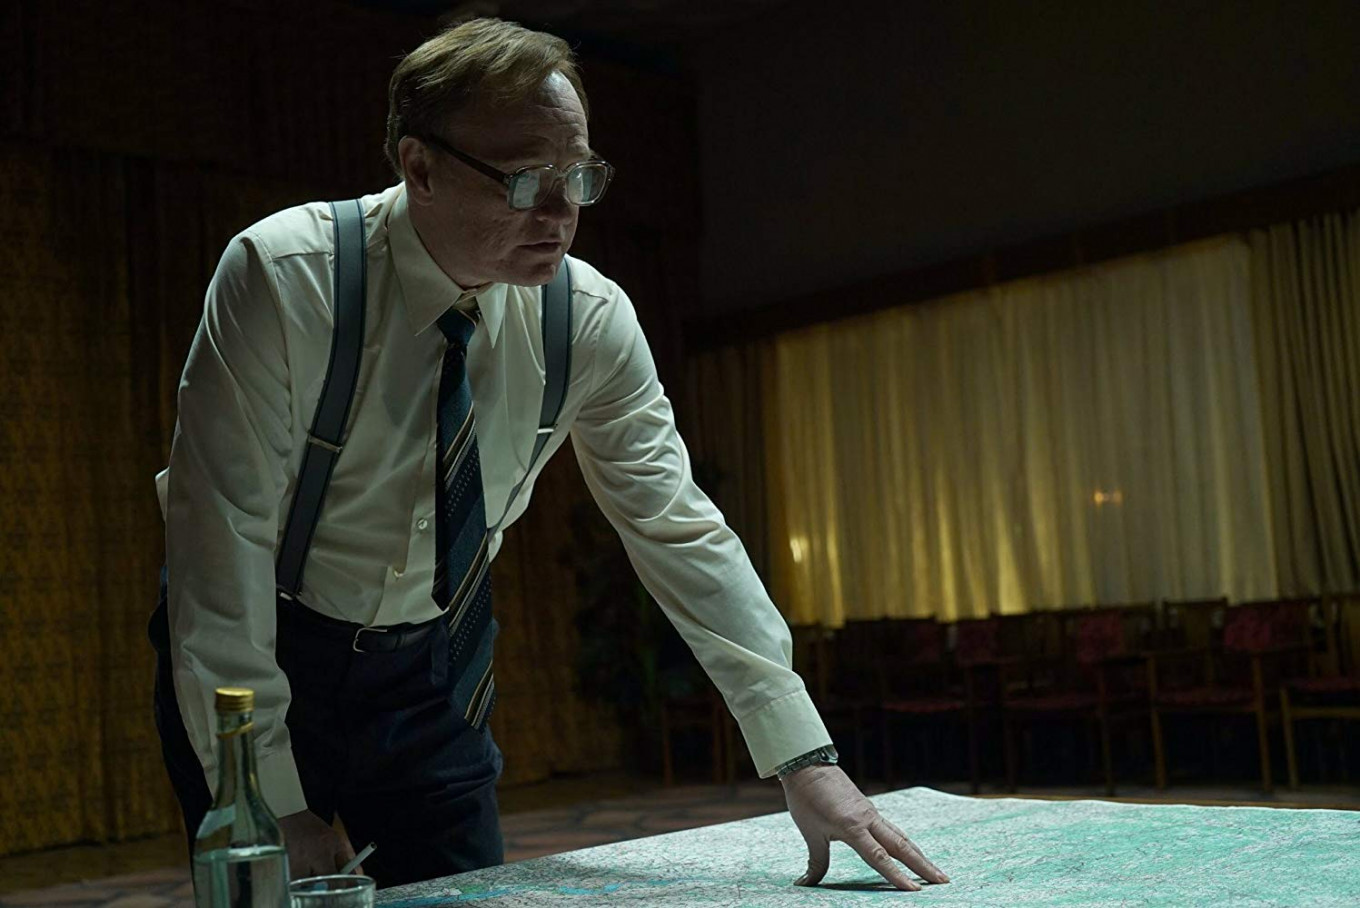 New Series 'Chernobyl' Peeks Into Conspiracy Of The 1986